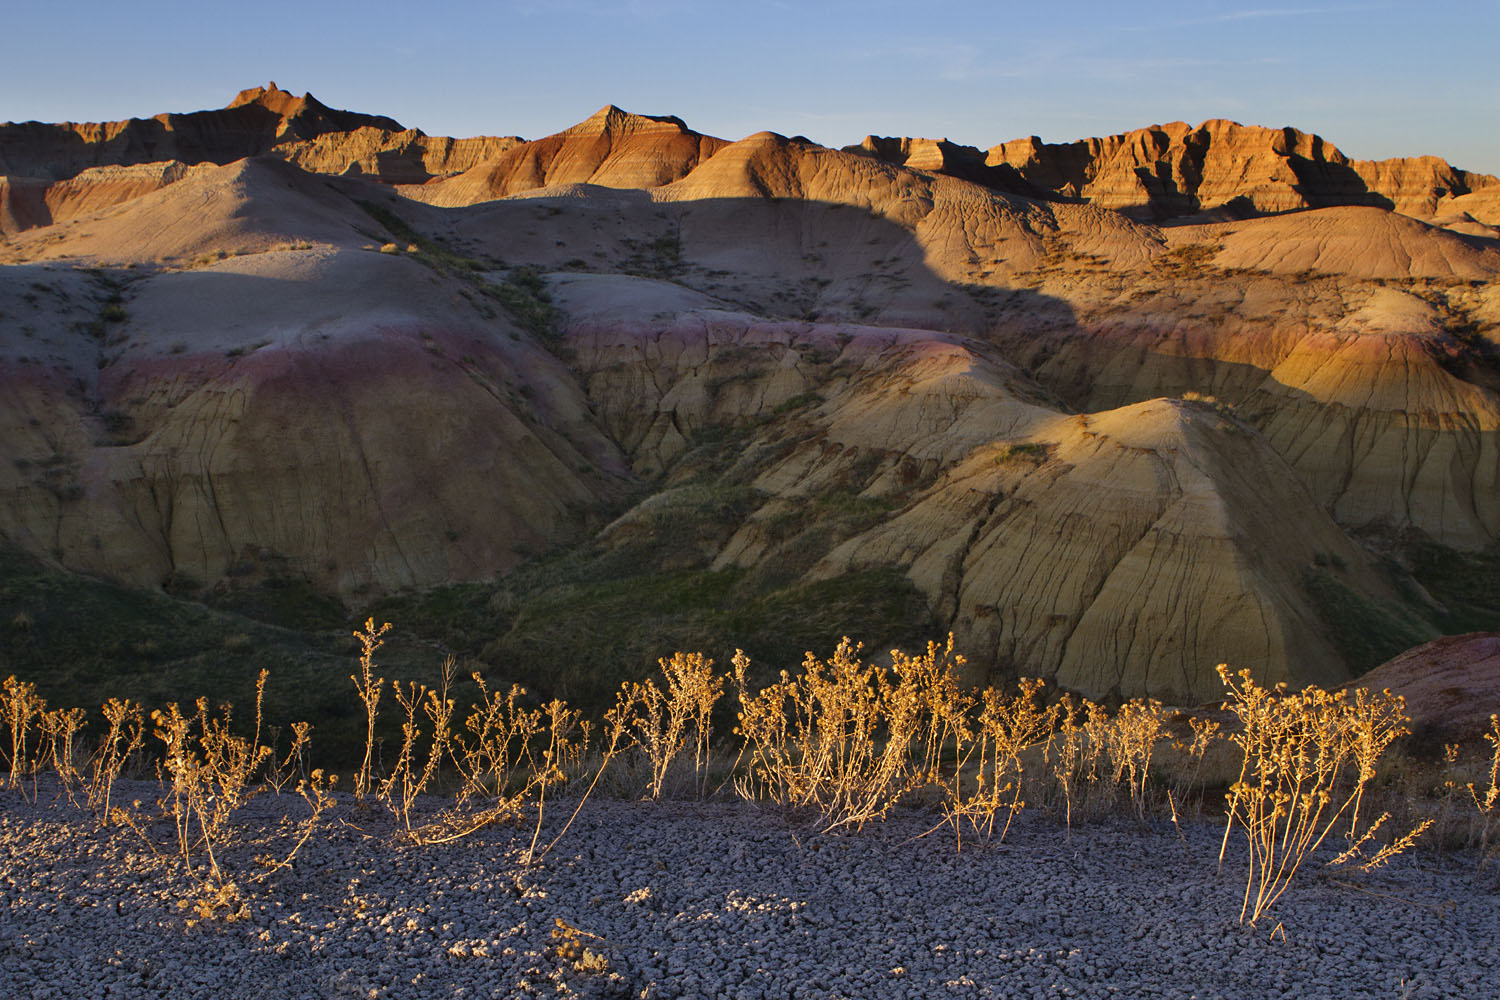 Badlands II